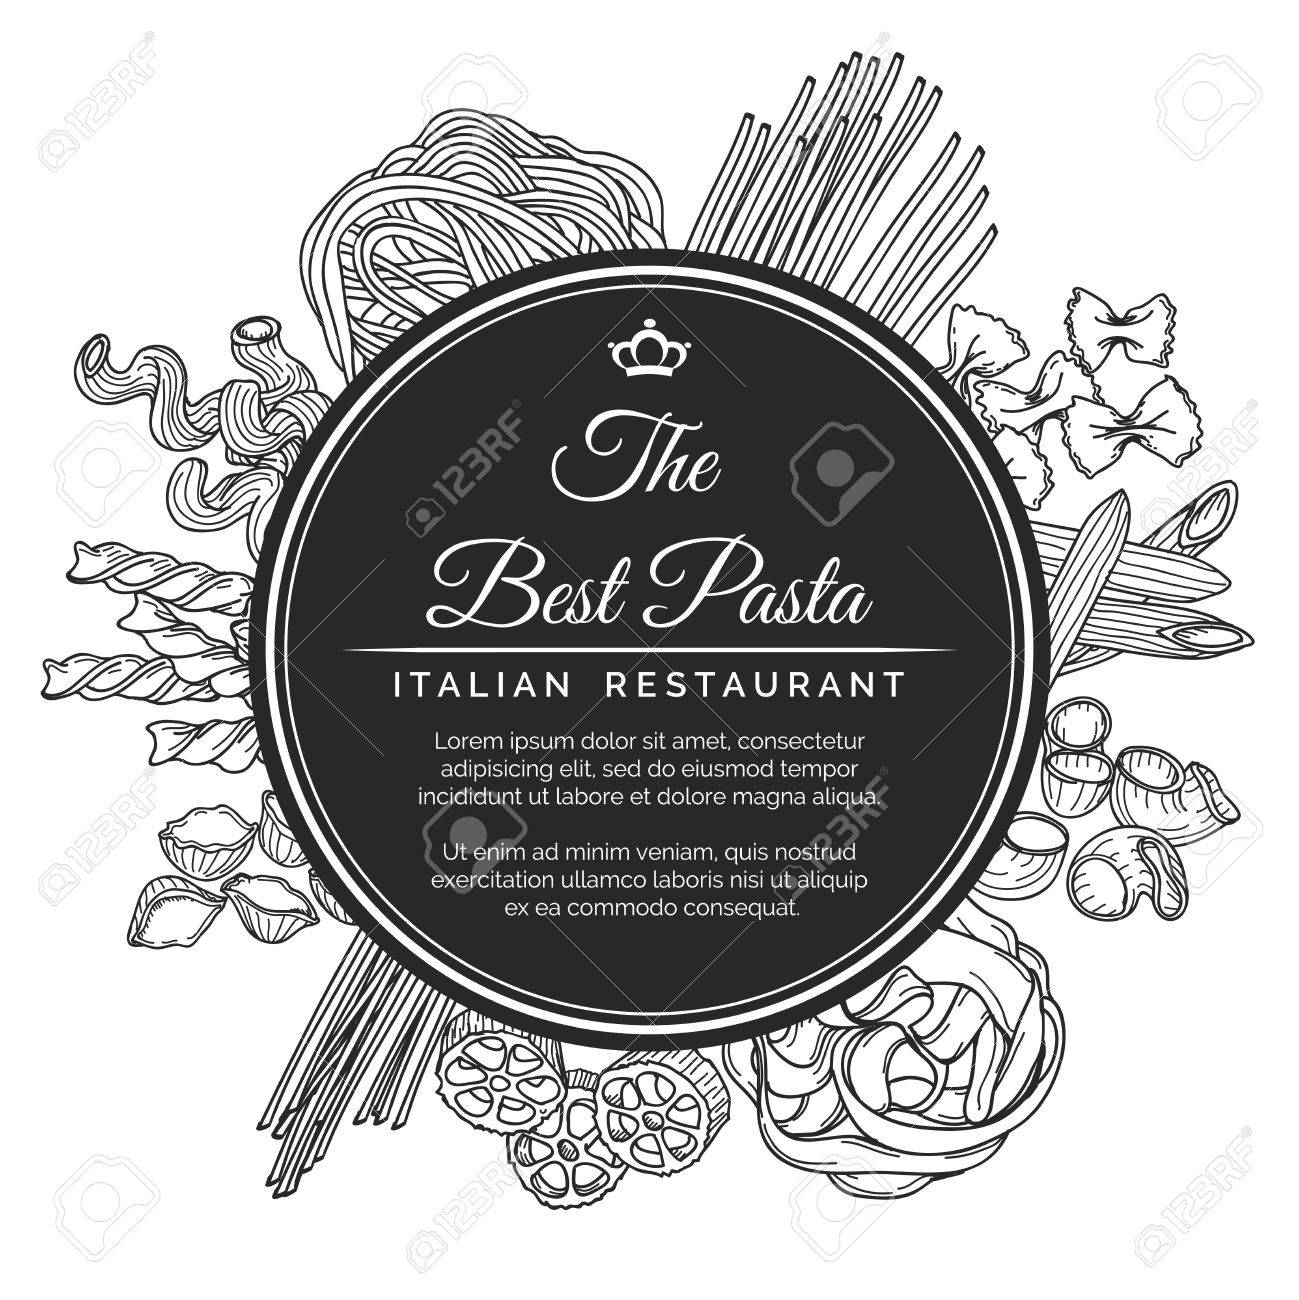 Hand Drawn Italian Pasta Restaurant Poster Best Pasta Restaurant Royalty Free Cliparts Vectors And Stock Illustration Image 53277211